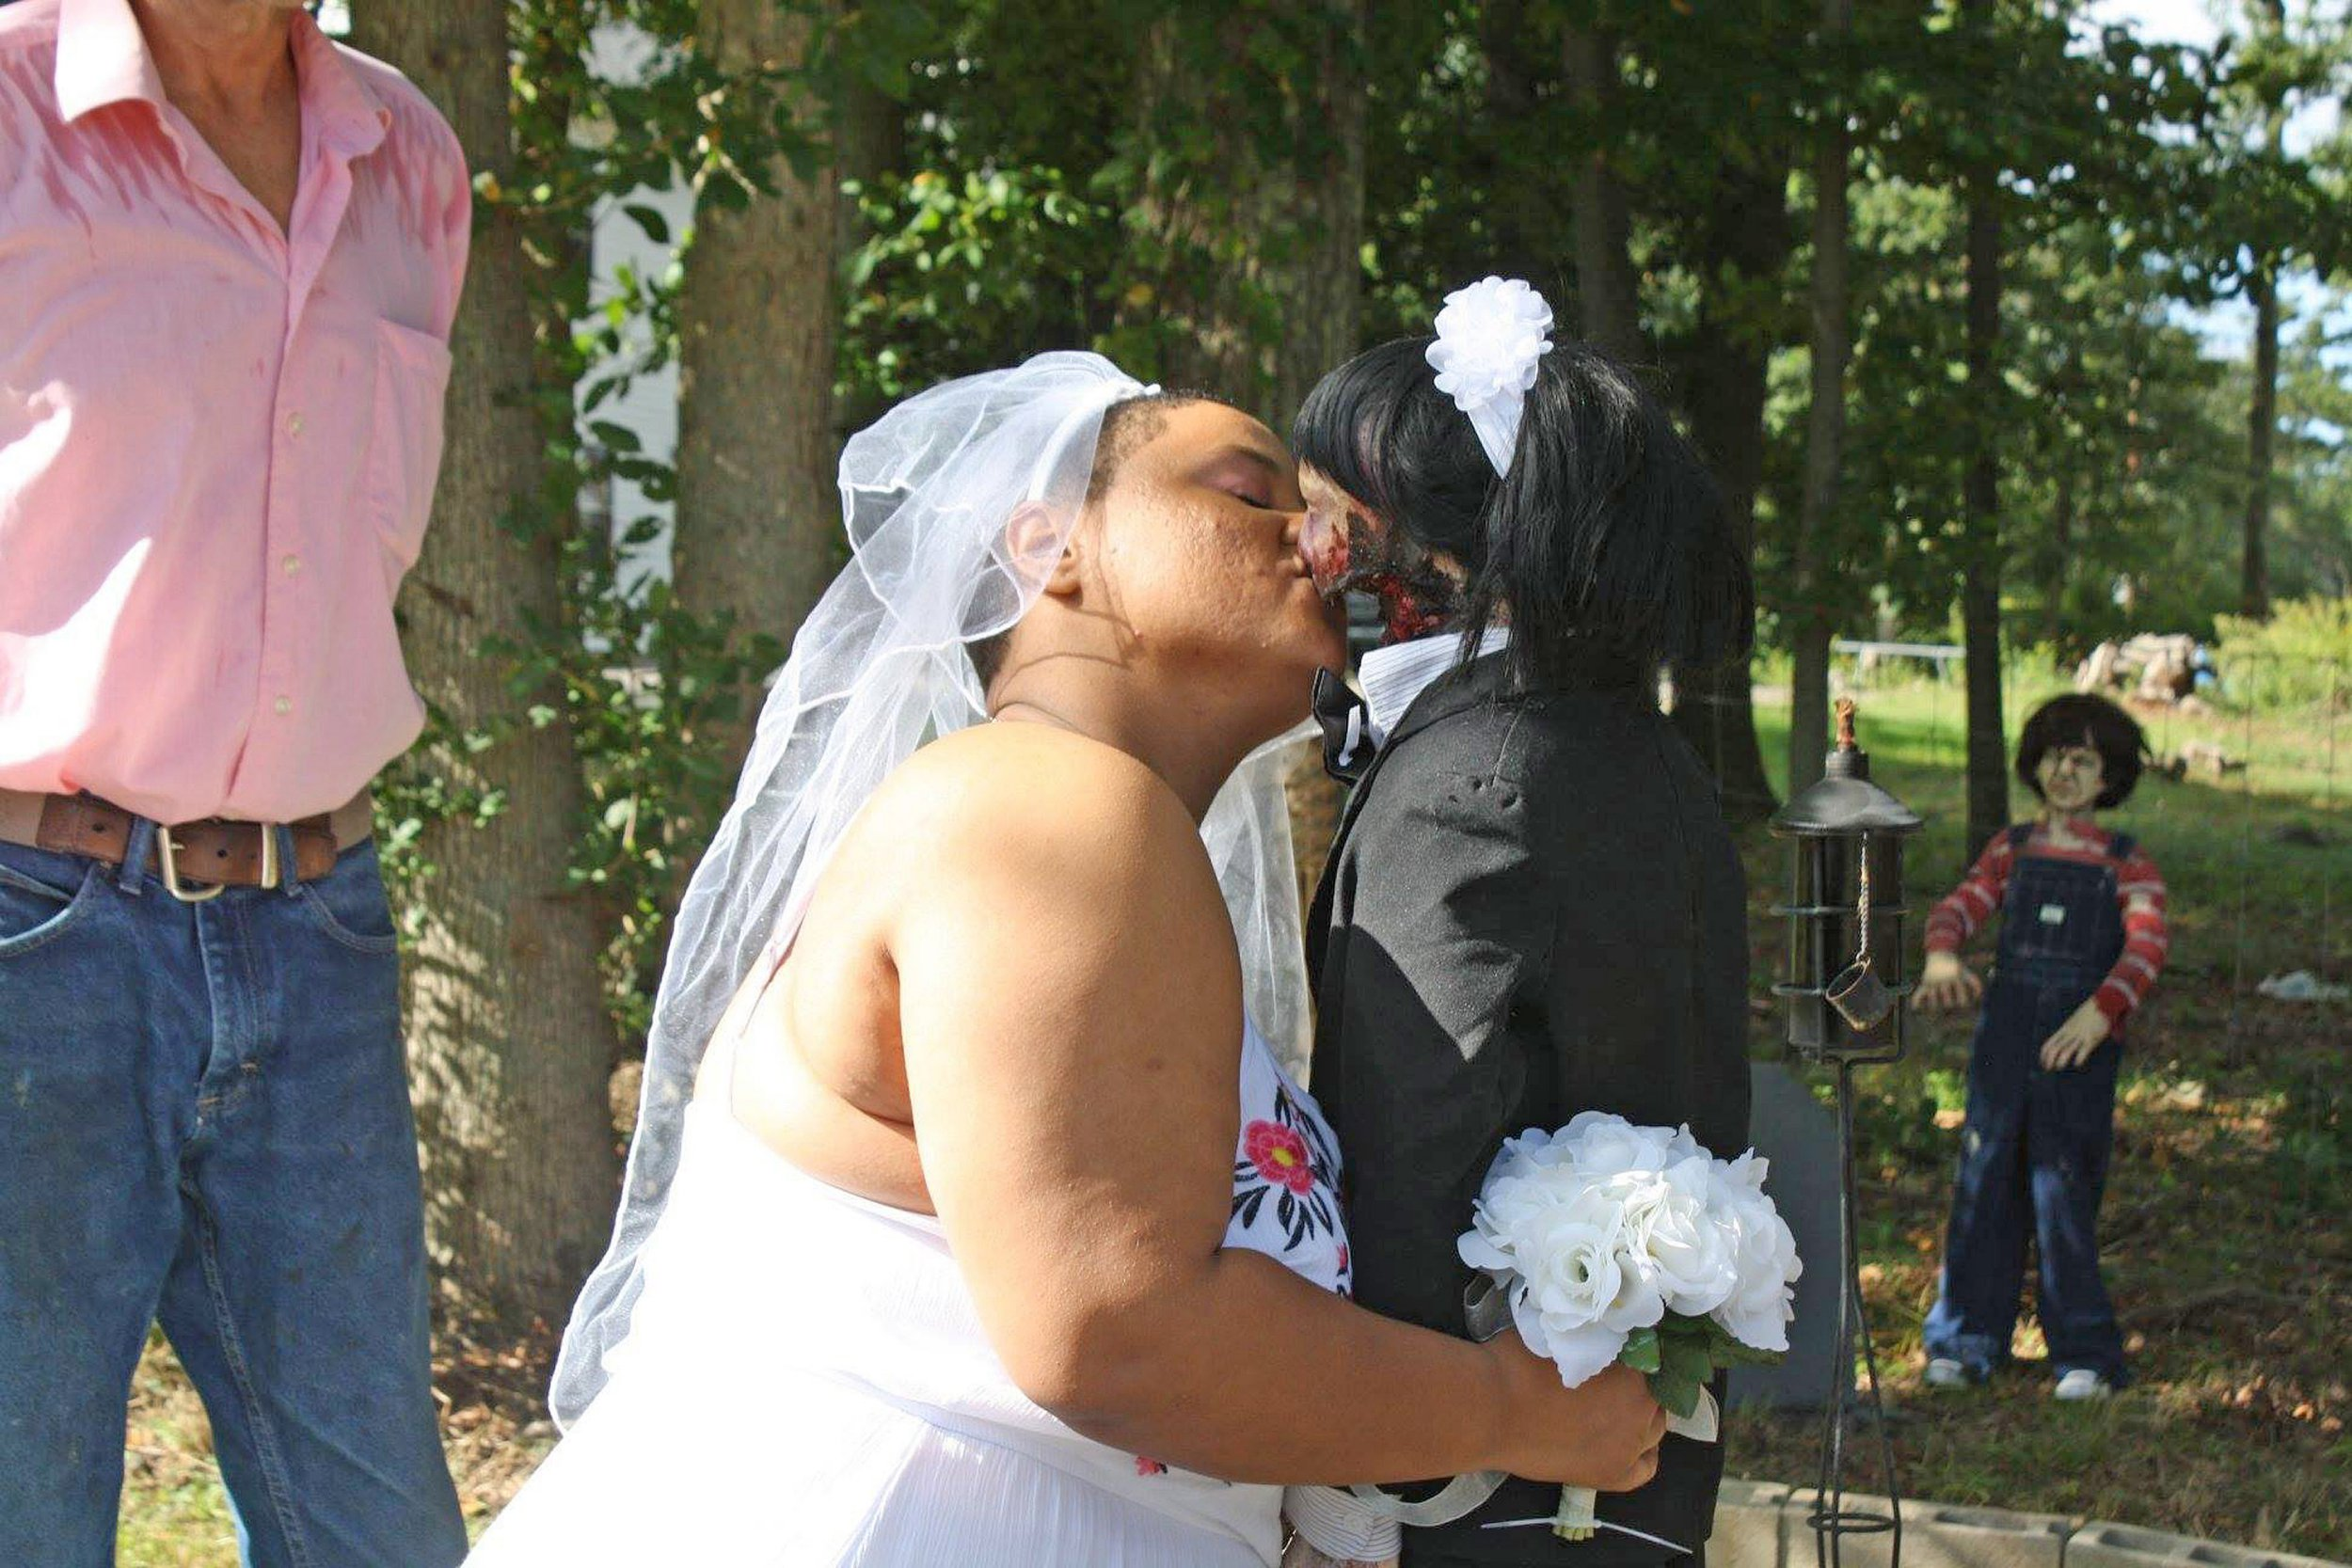 (PICTURED : Felicity Kadlec, 20, and her 37-year-old zombie doll wife, Kelly Rossi, on their wedding day on September 16 2018.) A girl has claimed that her world is now complete after she MARRIED her zombie doll. Felicity Kadlec, 20, wed the love of her life Kelly Rossi, a zombie doll who she claims is 37-years-old, six months ago (Sept 15). The beautiful ceremony, which took place in Tiverton, Rhode Island, USA, cost Felicity 500USD (388GBP) - covering her own wedding dress, a suit for Kelly and decorations for the outdoor venue. Alongside four of her family friends, eight of Felicitys other dolls also attended the ceremony to show their support. - SEE CATERS COPY